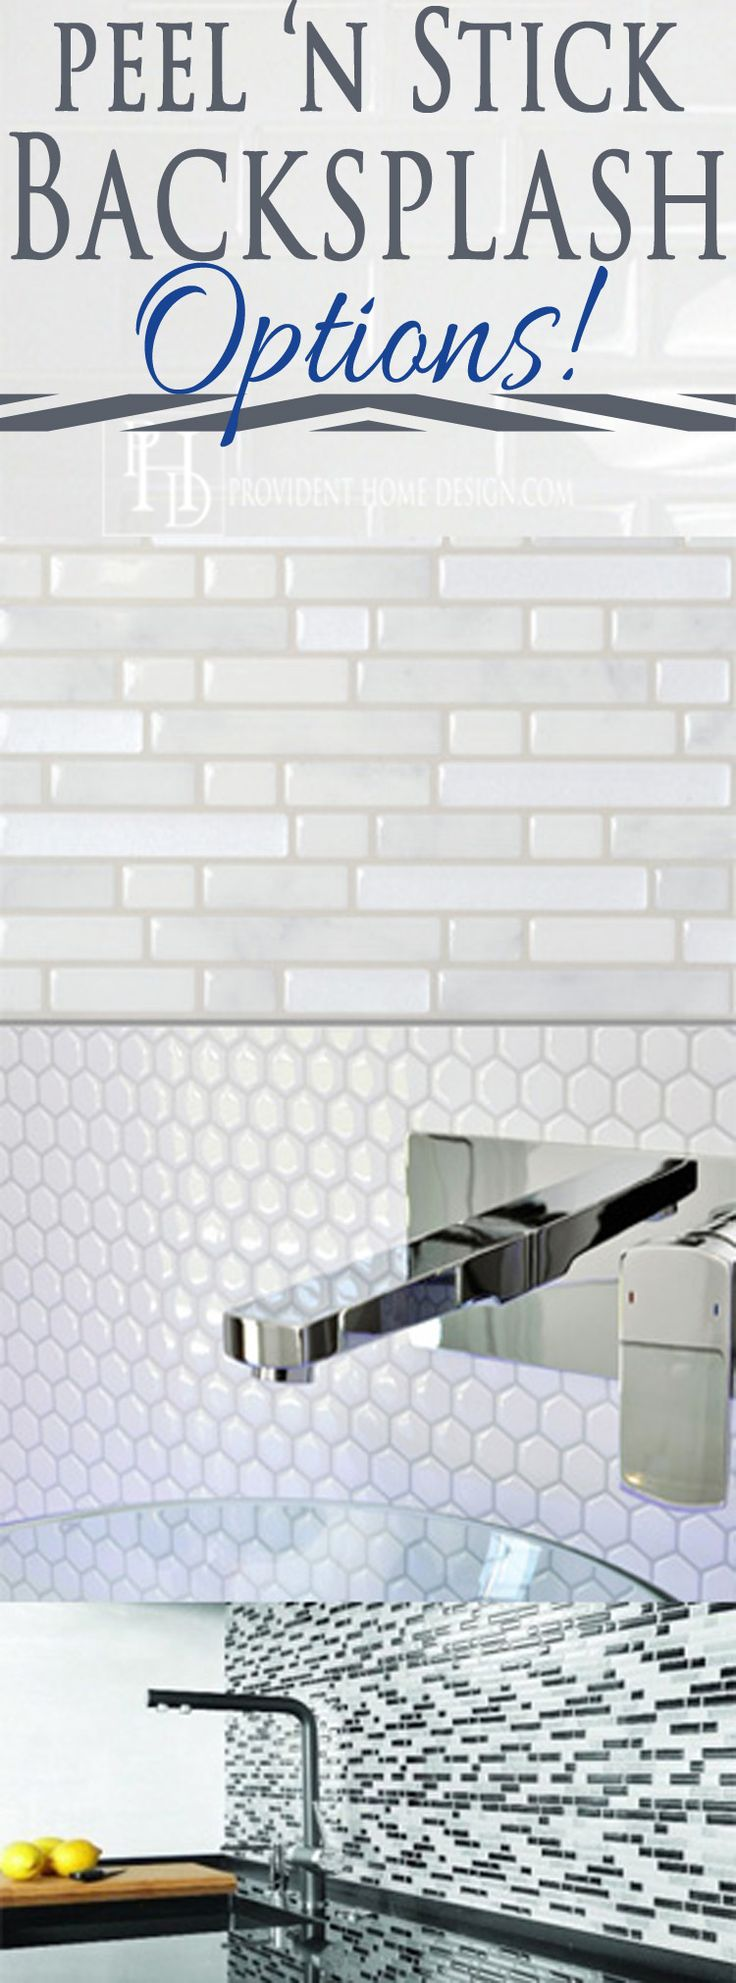 Want an attractive backsplash but no wet saw or grout mess? Check out these peel n' stick backsplash options! Who knew?